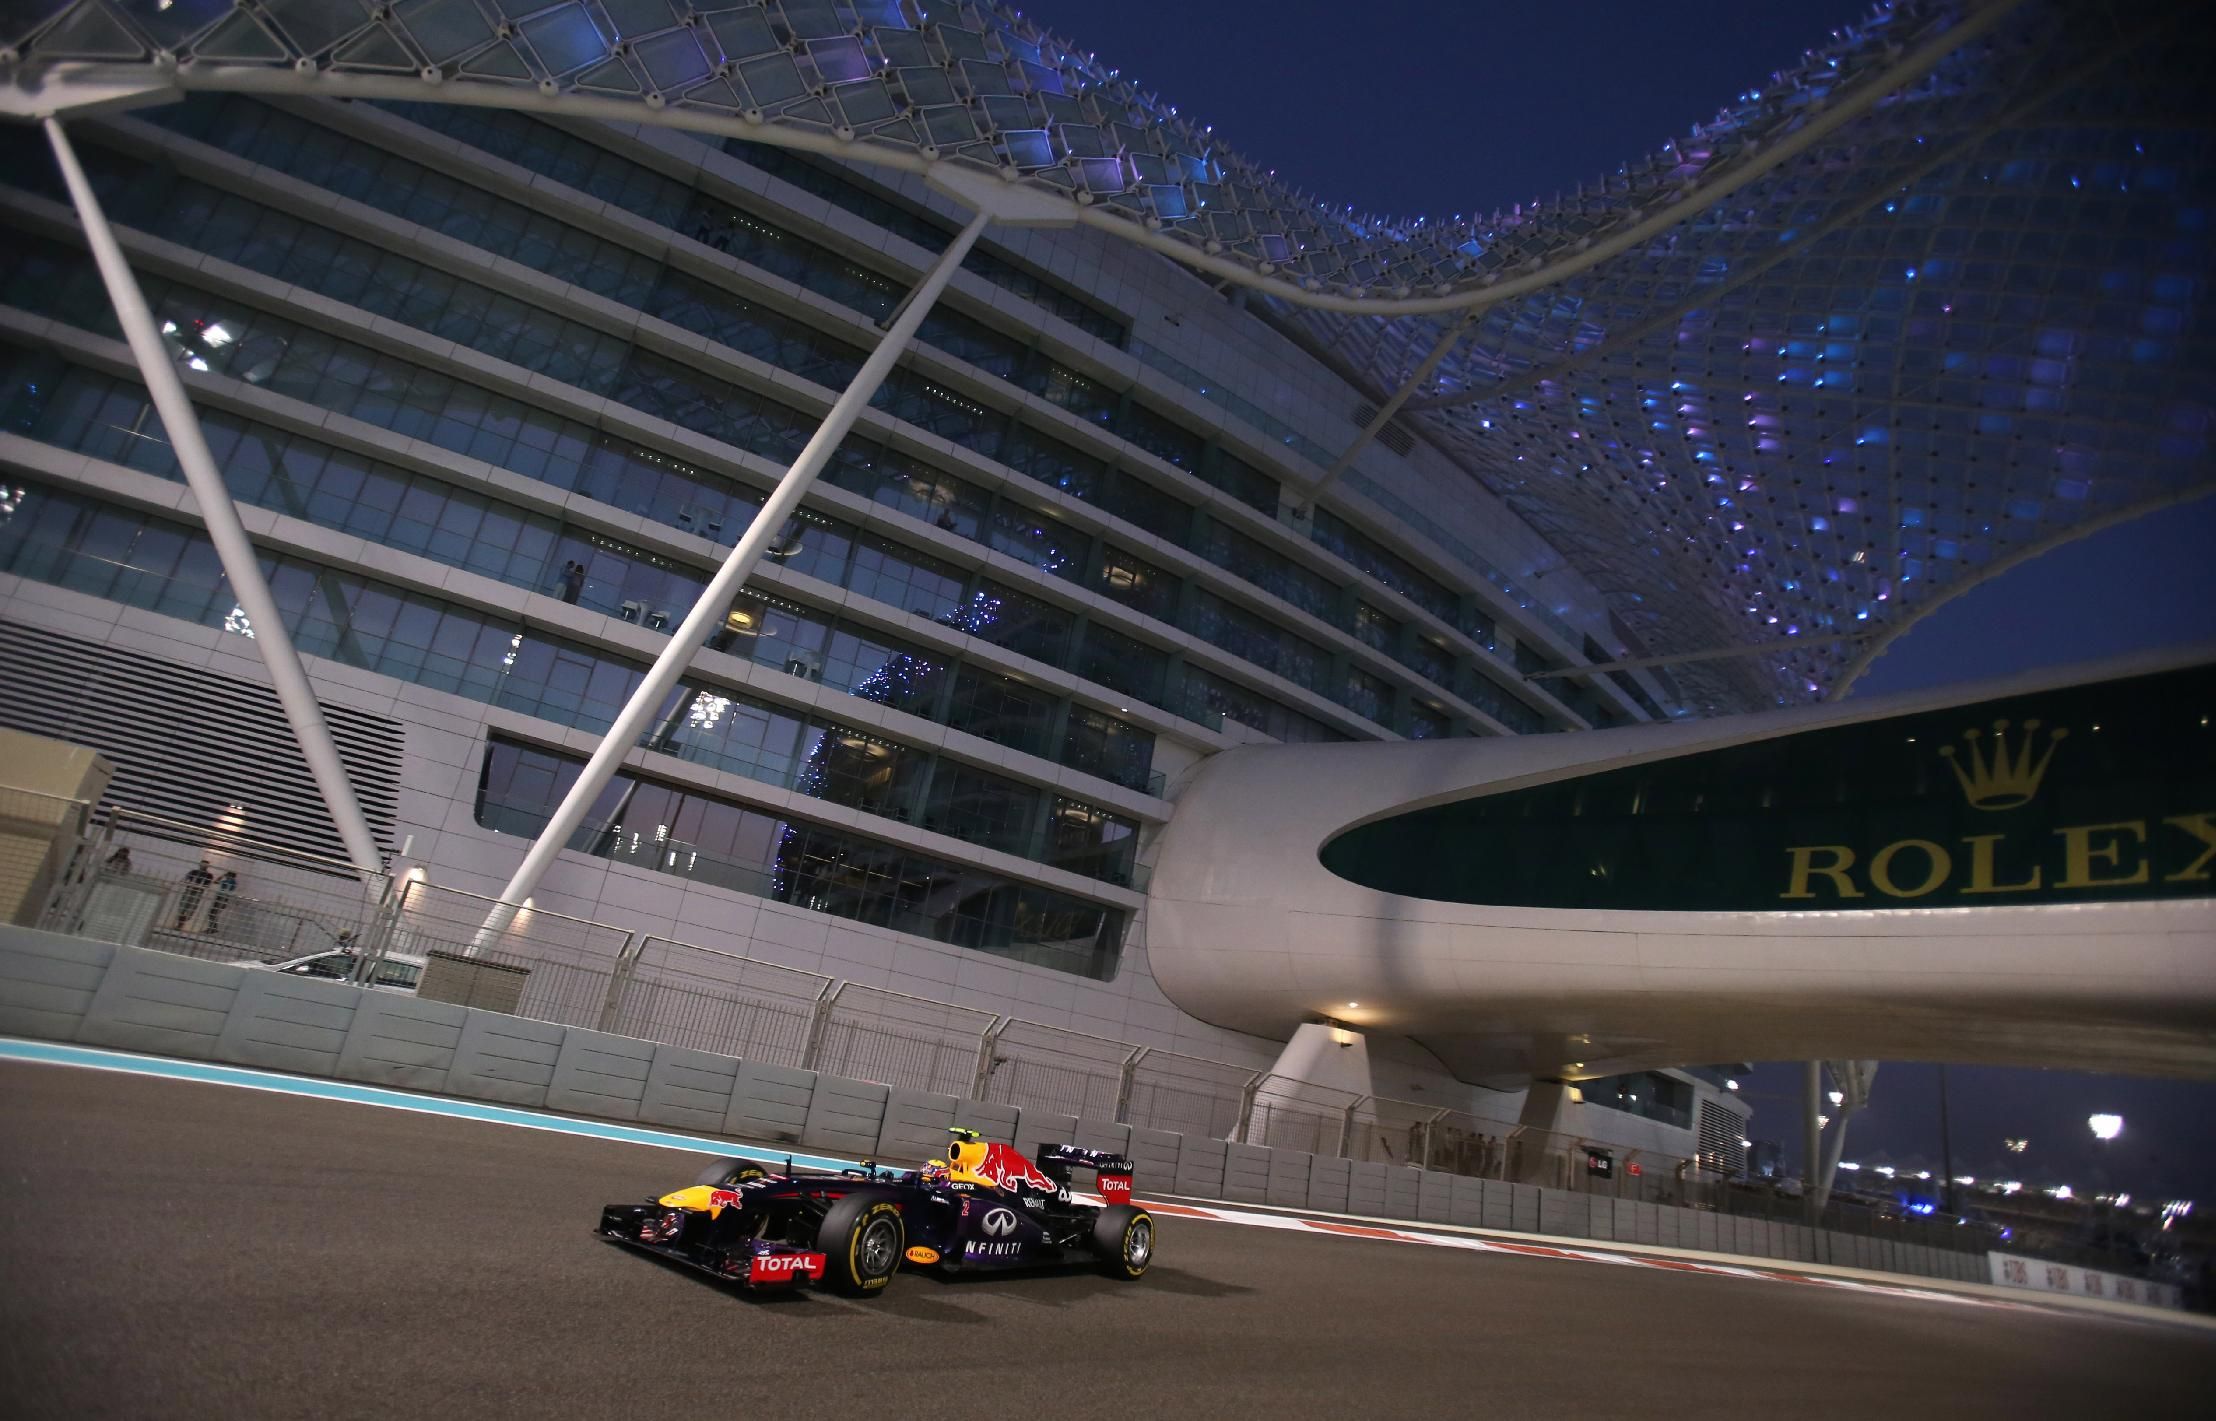 Red Bull driver Mark Webber of Australia steers his car during the qualifying session at the Yas Marina racetrack in Abu Dhabi, United Arab Emirates, Saturday, Nov. 2, 2013